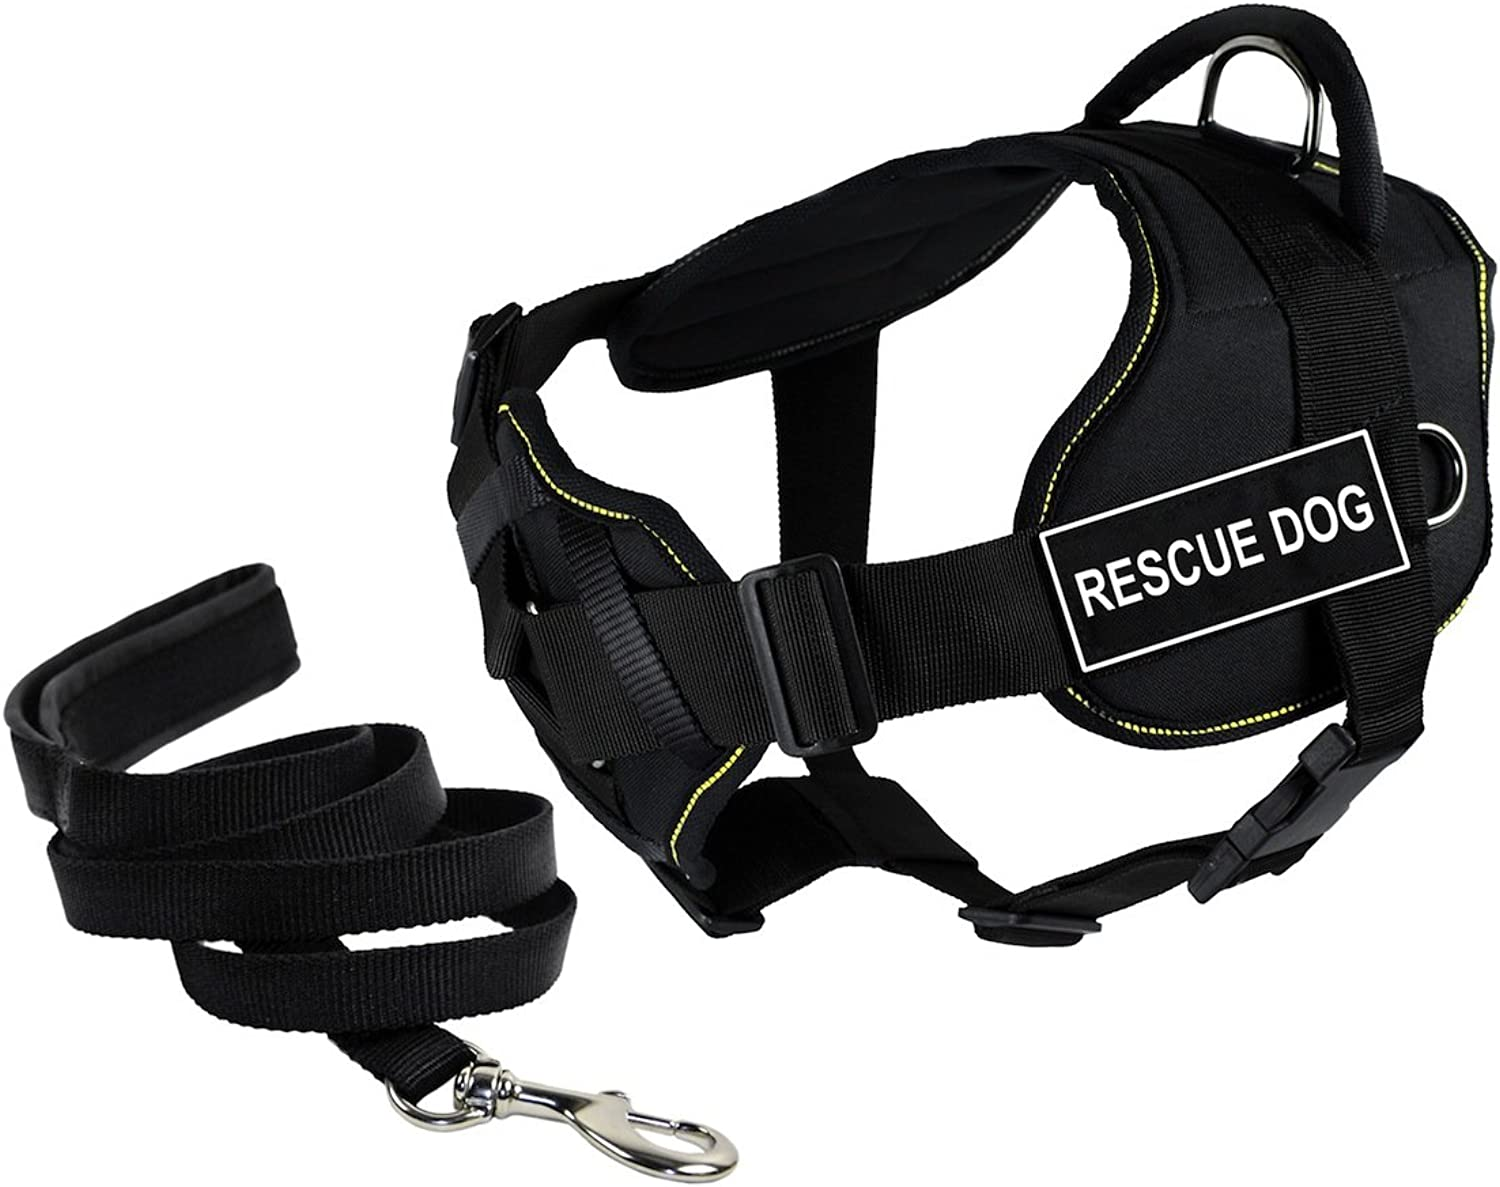 Dean & Tyler's DT Fun Chest Support RESCUE DOG Harness, Small, with 6 ft Padded Puppy Leash.